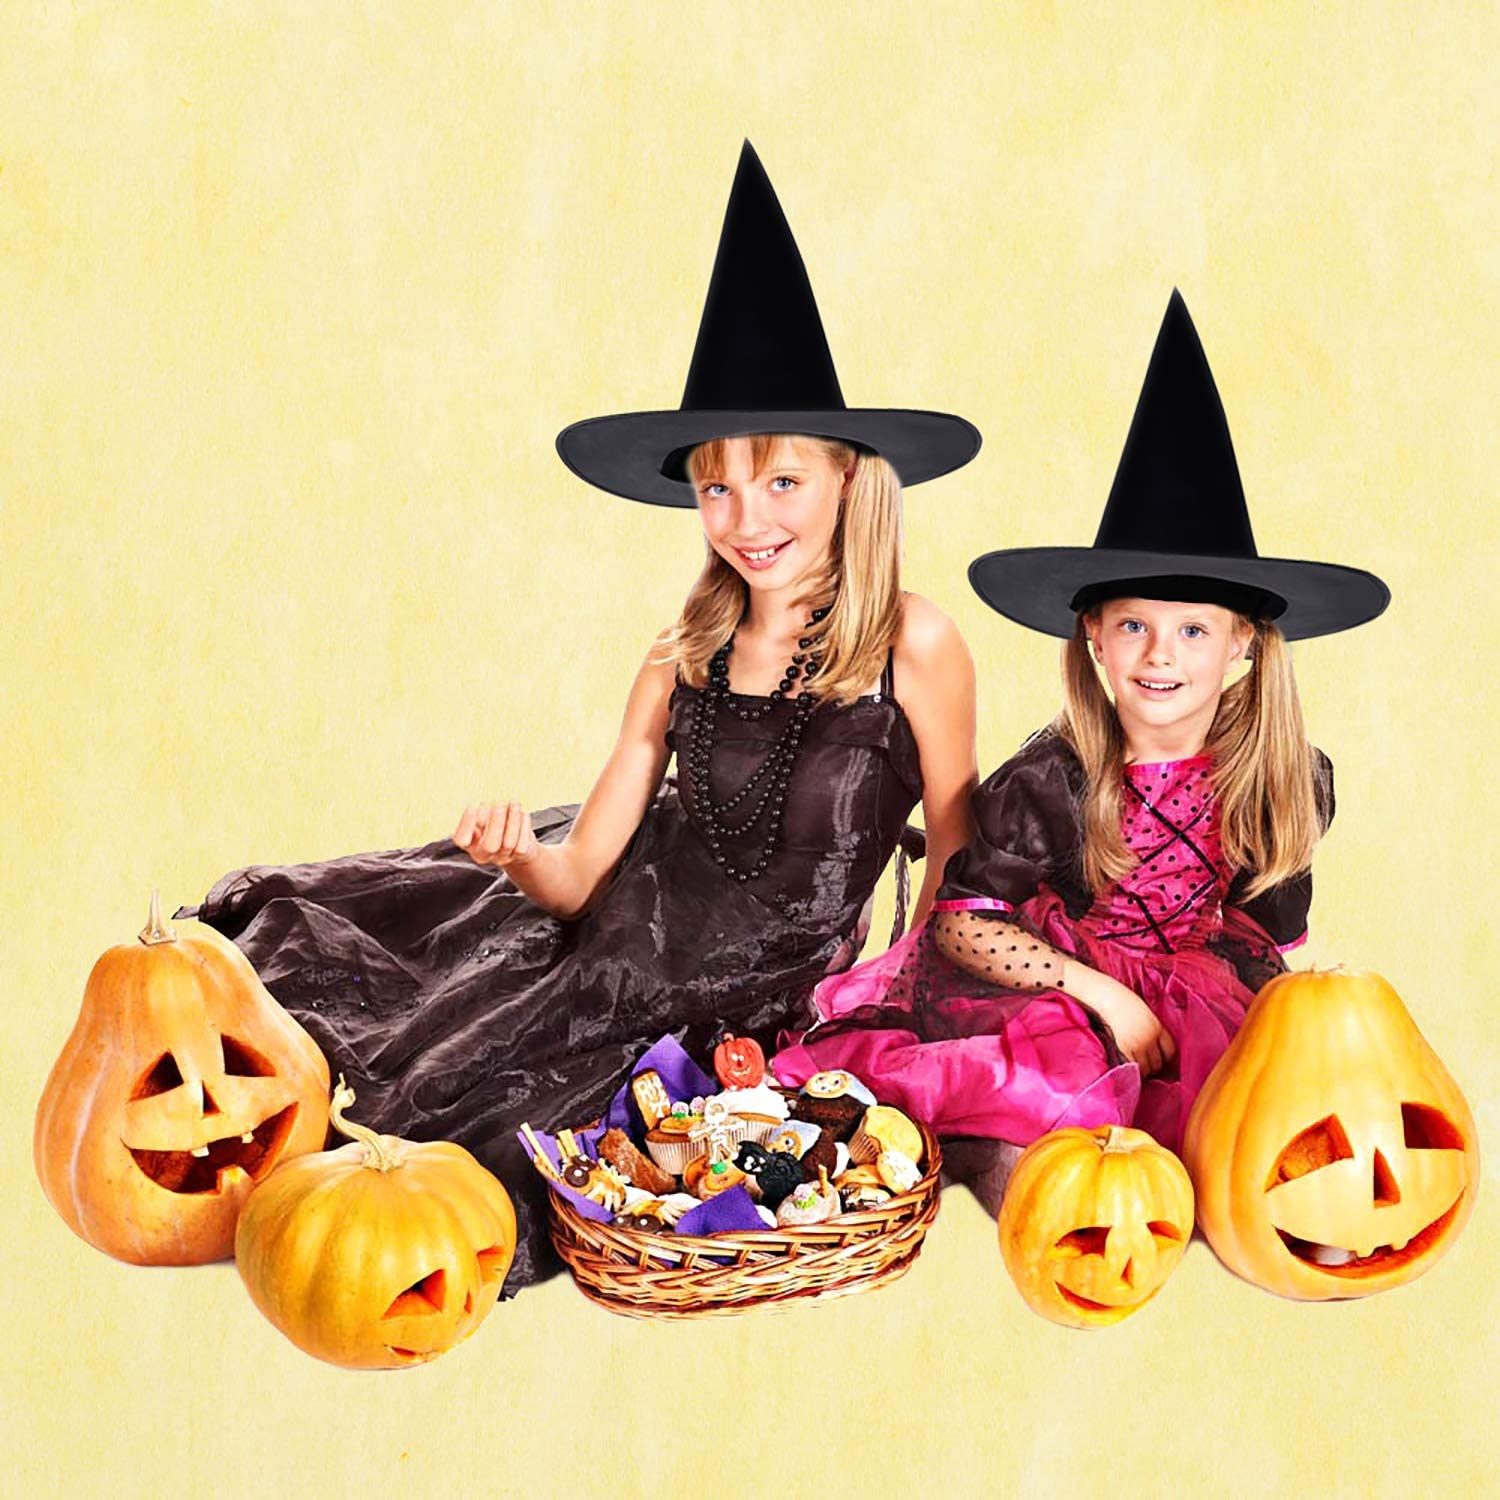 JETTINGBUY 10 Pack Witch Hats Halloween Costume Black Hats Witch Costume Accessory Halloween Women Costume for Holiday Halloween Christmas Carnivals Party